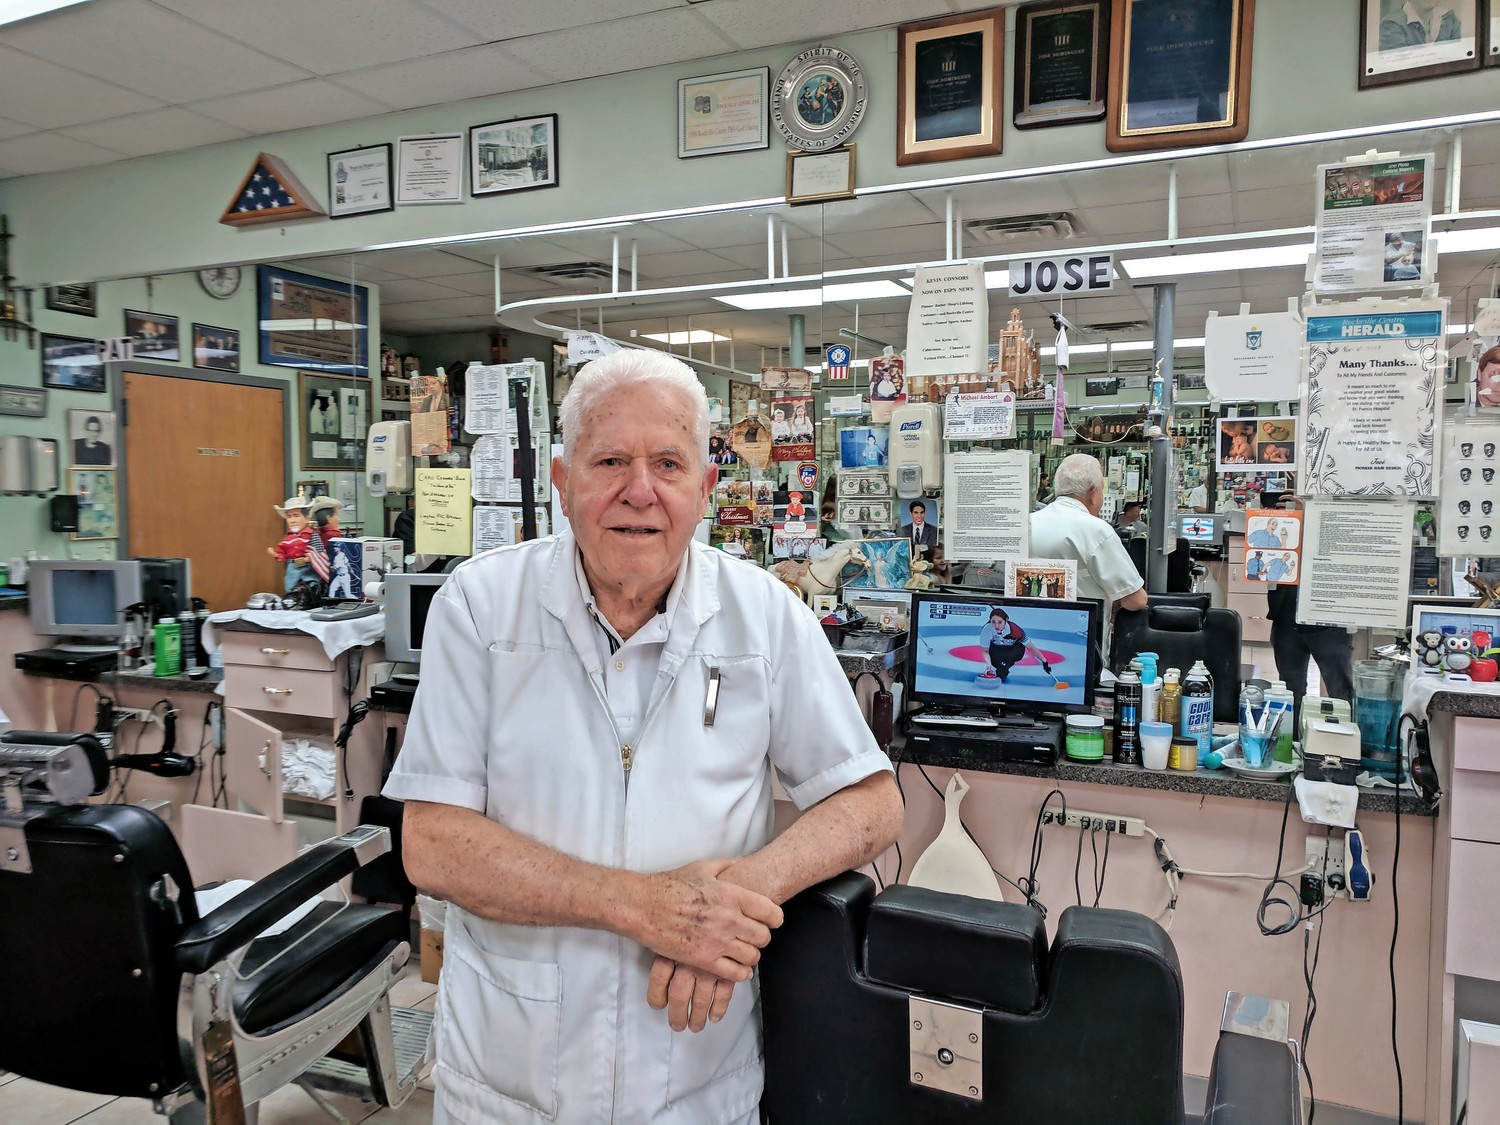 Jose Dominguez came to Rockville Centre from Cuba 50 years ago, and has spent those decades cutting hair for customers.